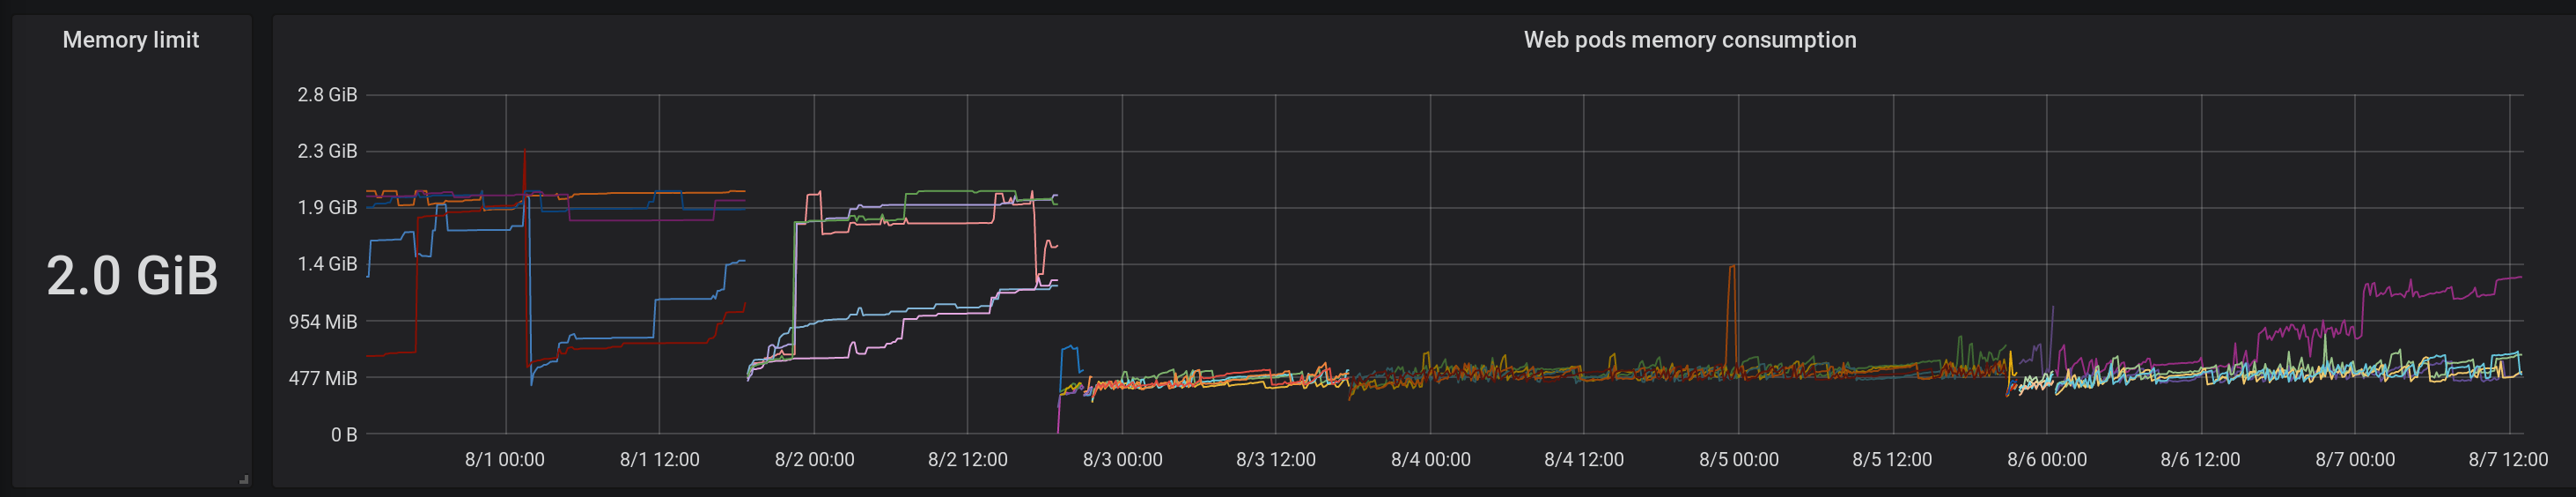 Web pods memory consumption before and after switching to Fullstaq Ruby